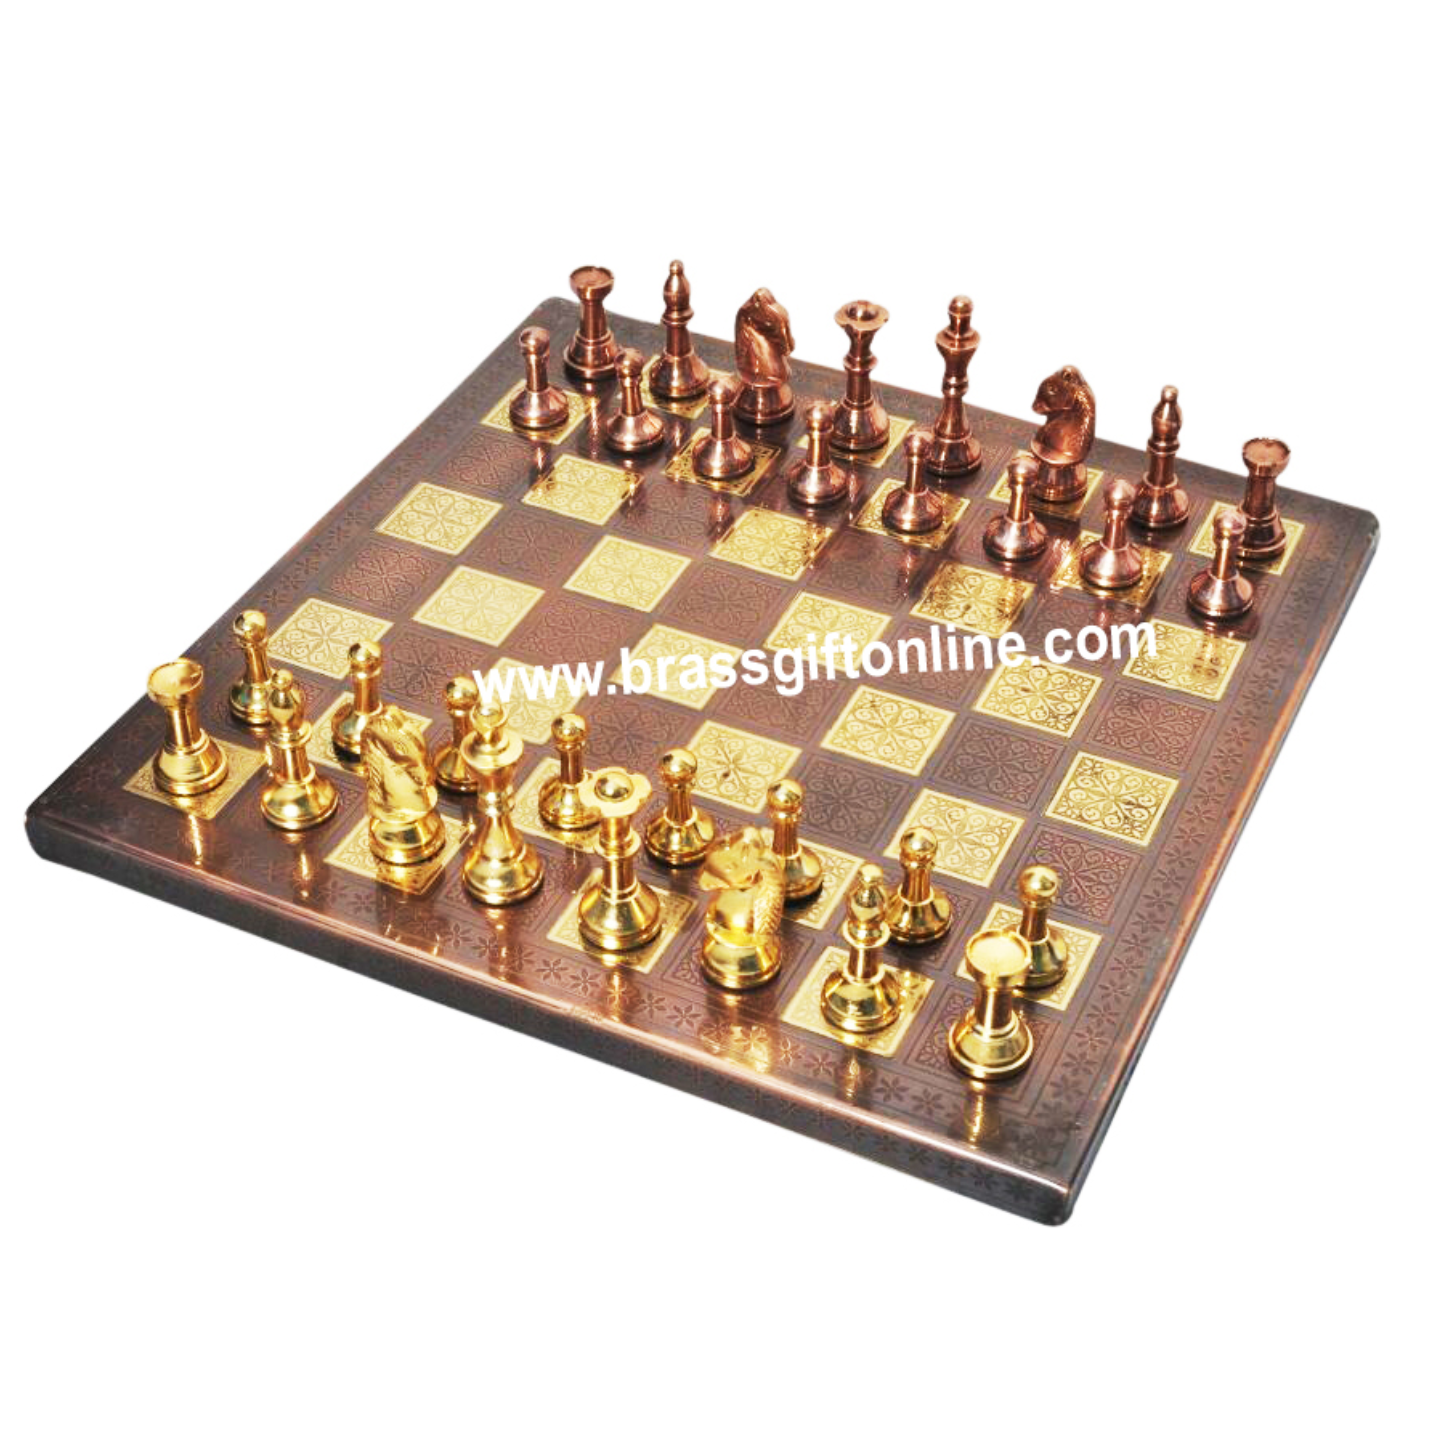 Brass Chess Board, Chess Board, Board, Chess Board Children Playing, Playing Items, Chess, Chesh, Shatranj Board, Shatranj, Satranja, Satranj Board